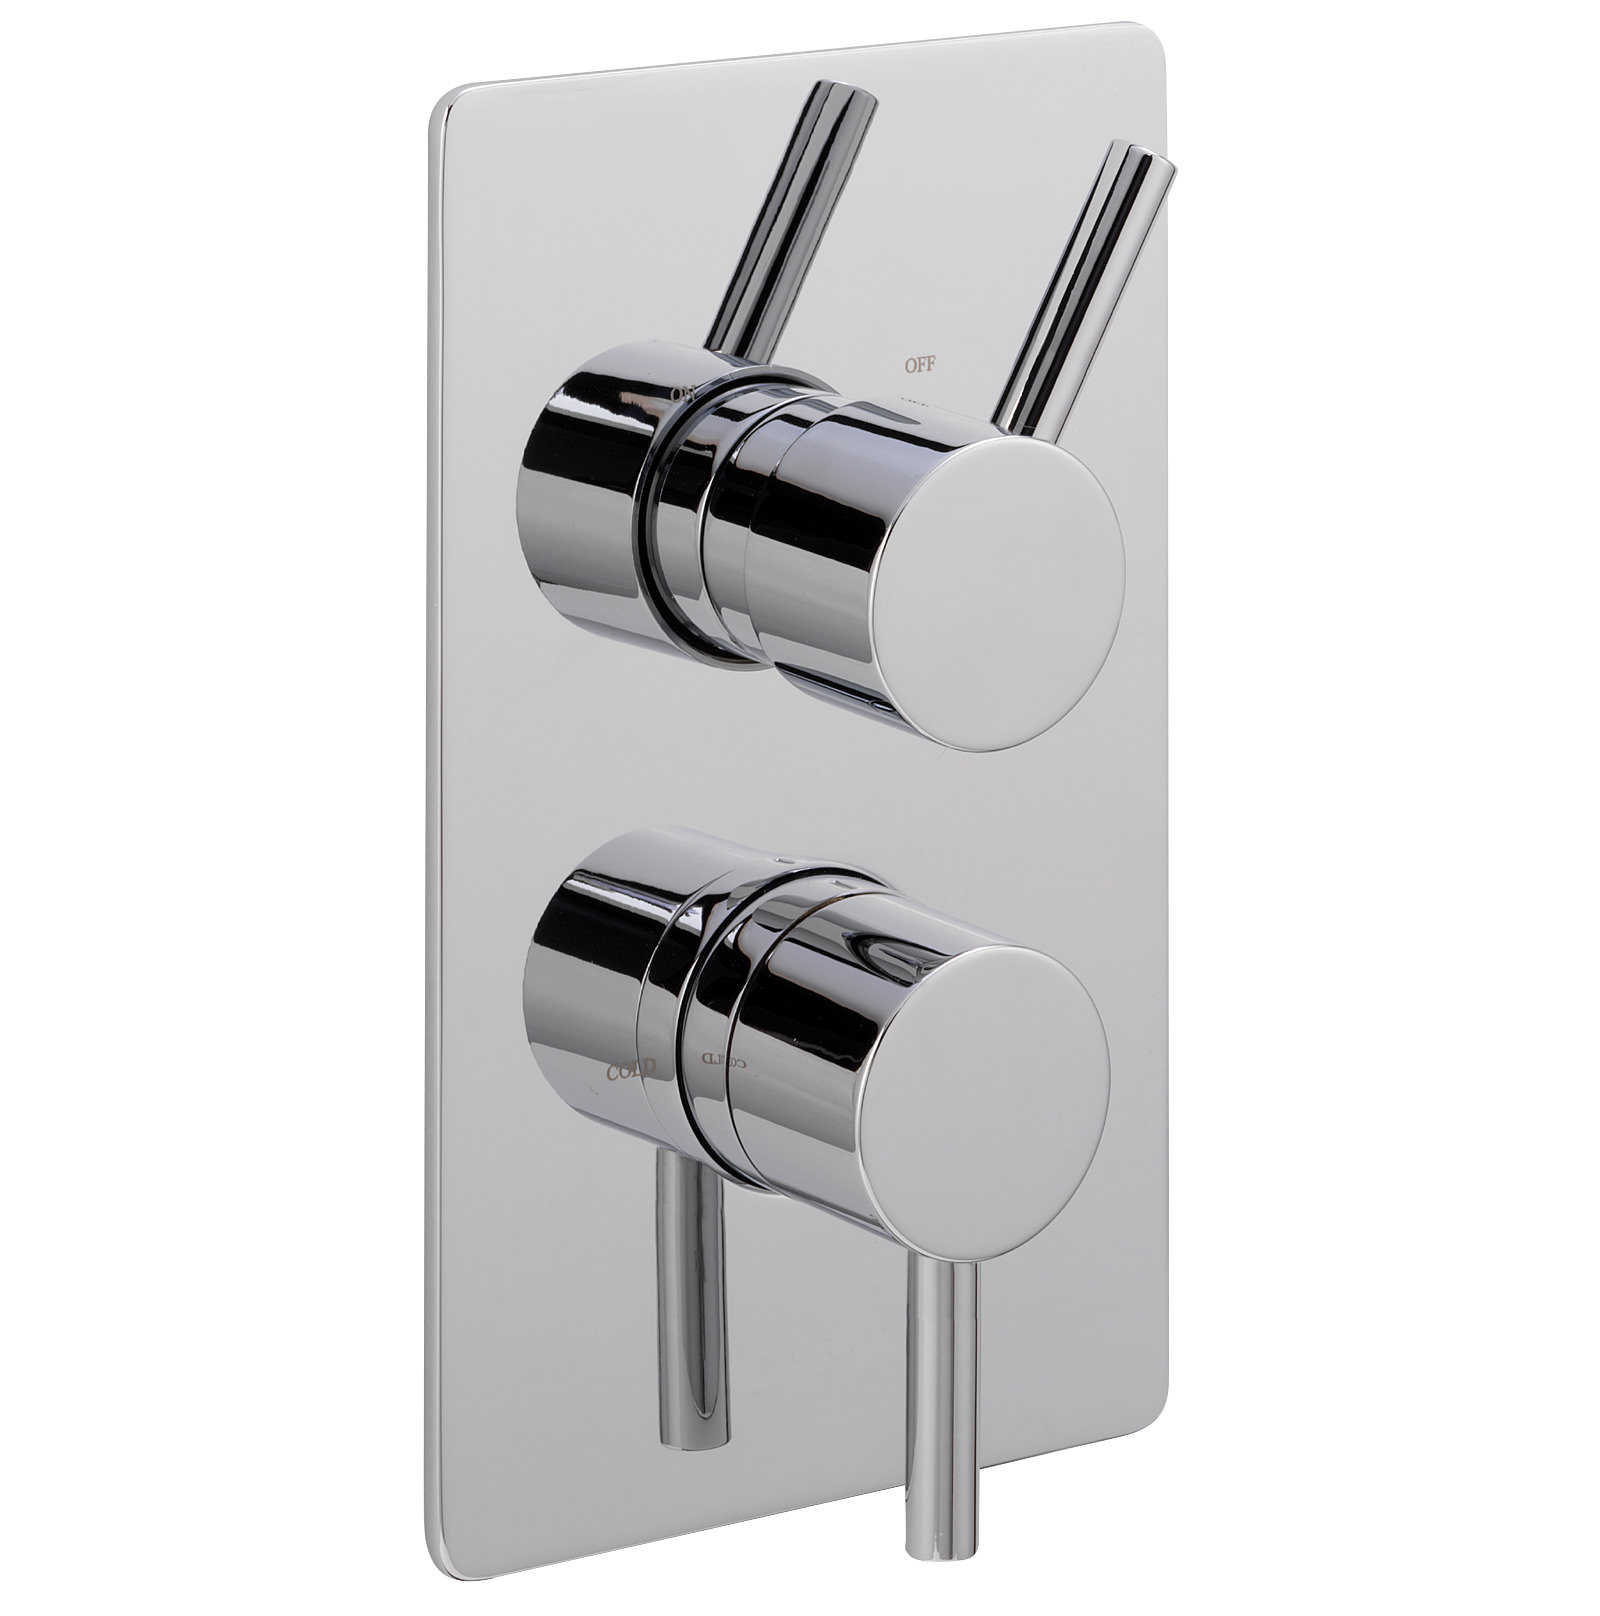 Sagittarius Ergo Concealed Thermostatic Valve With 2 Way